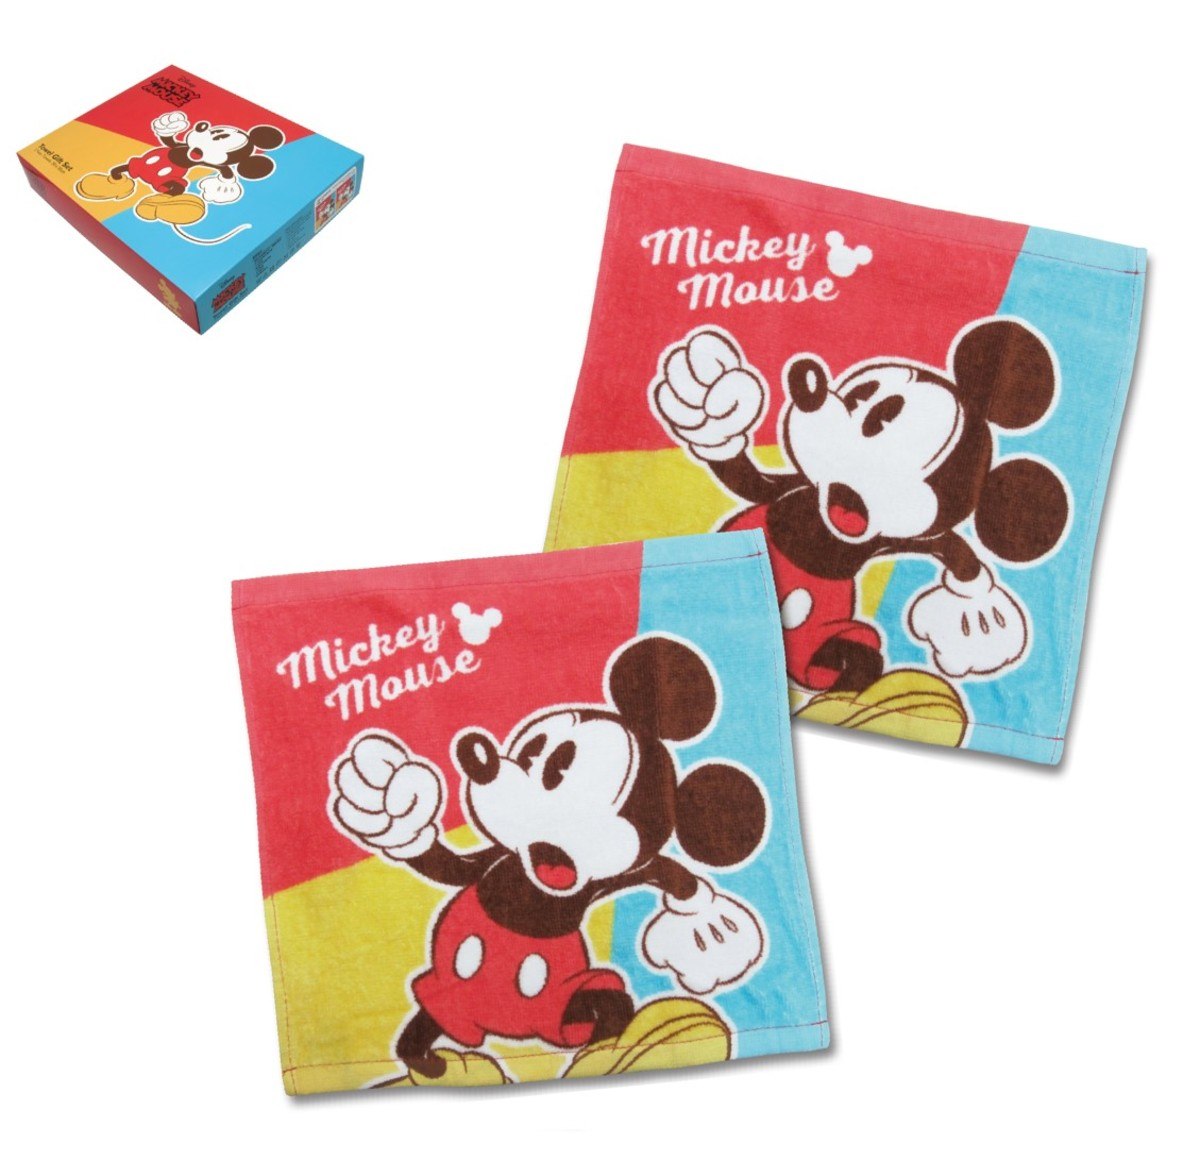 face Towel box set(limited edition) (Licensed by Disney)